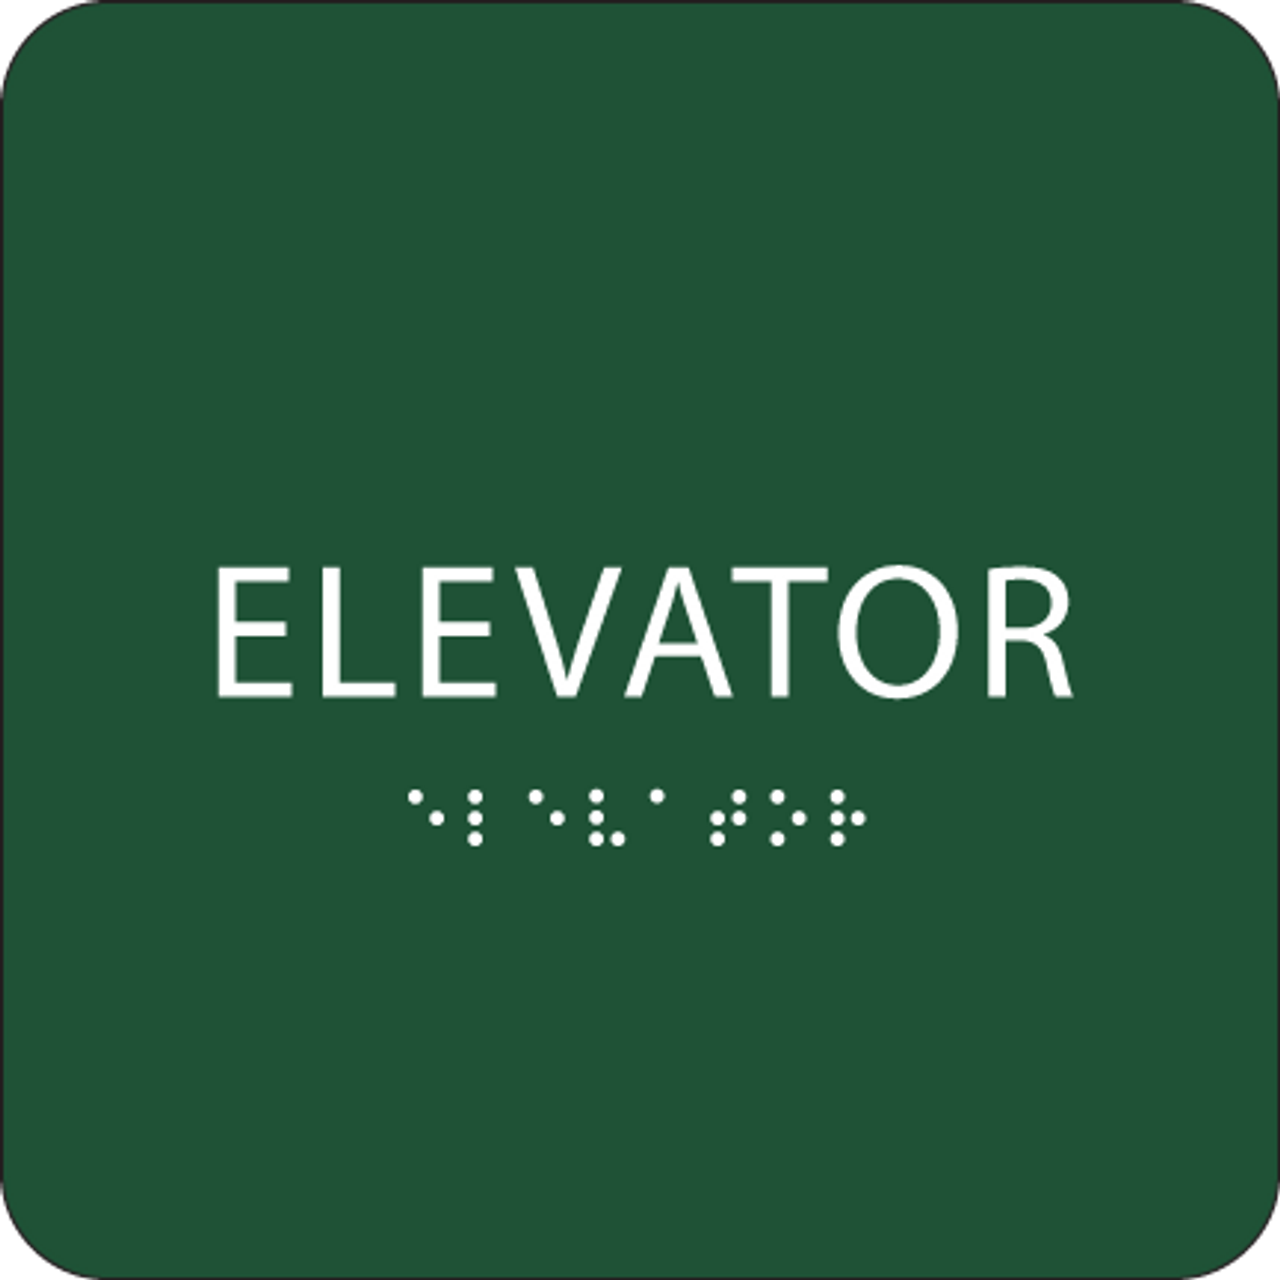 Green Tactile Elevator Sign